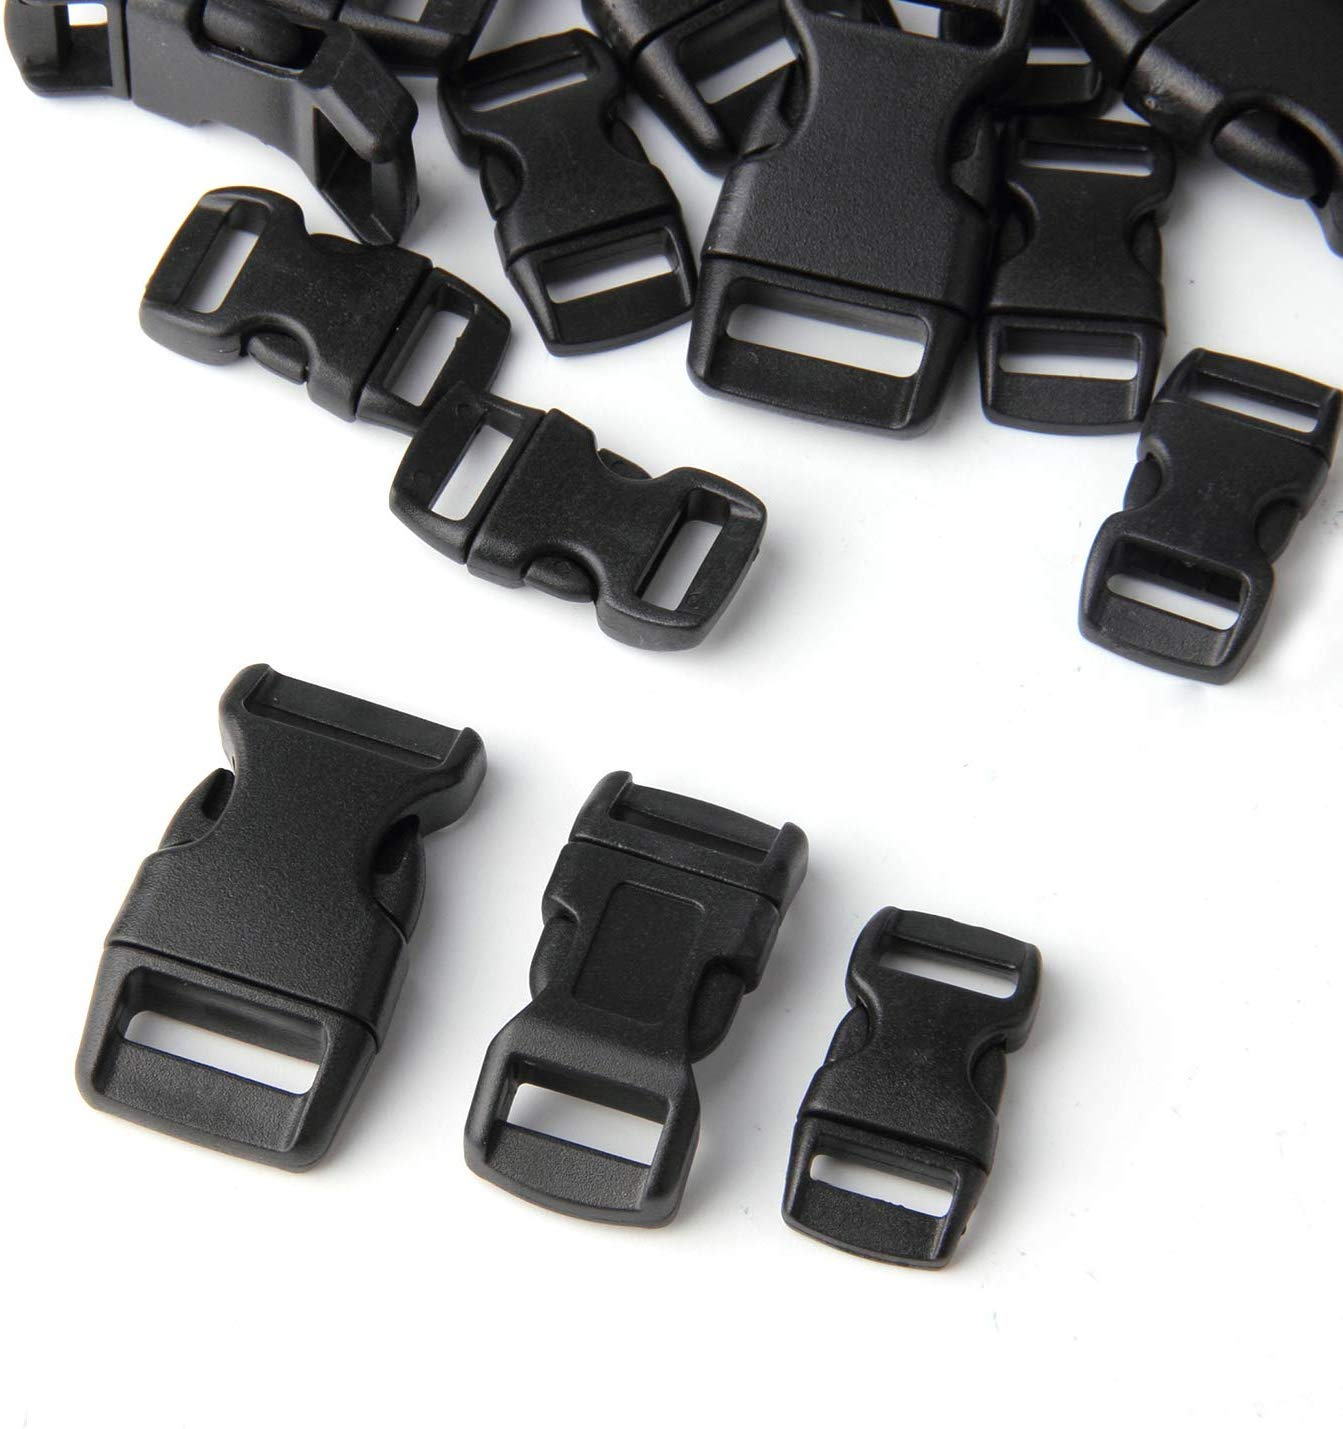 Black Plastic Contoured Side Release Buckles for Paracord Bracelets-60pcs 20 Each 5//8 1//2 and 3//8 inch